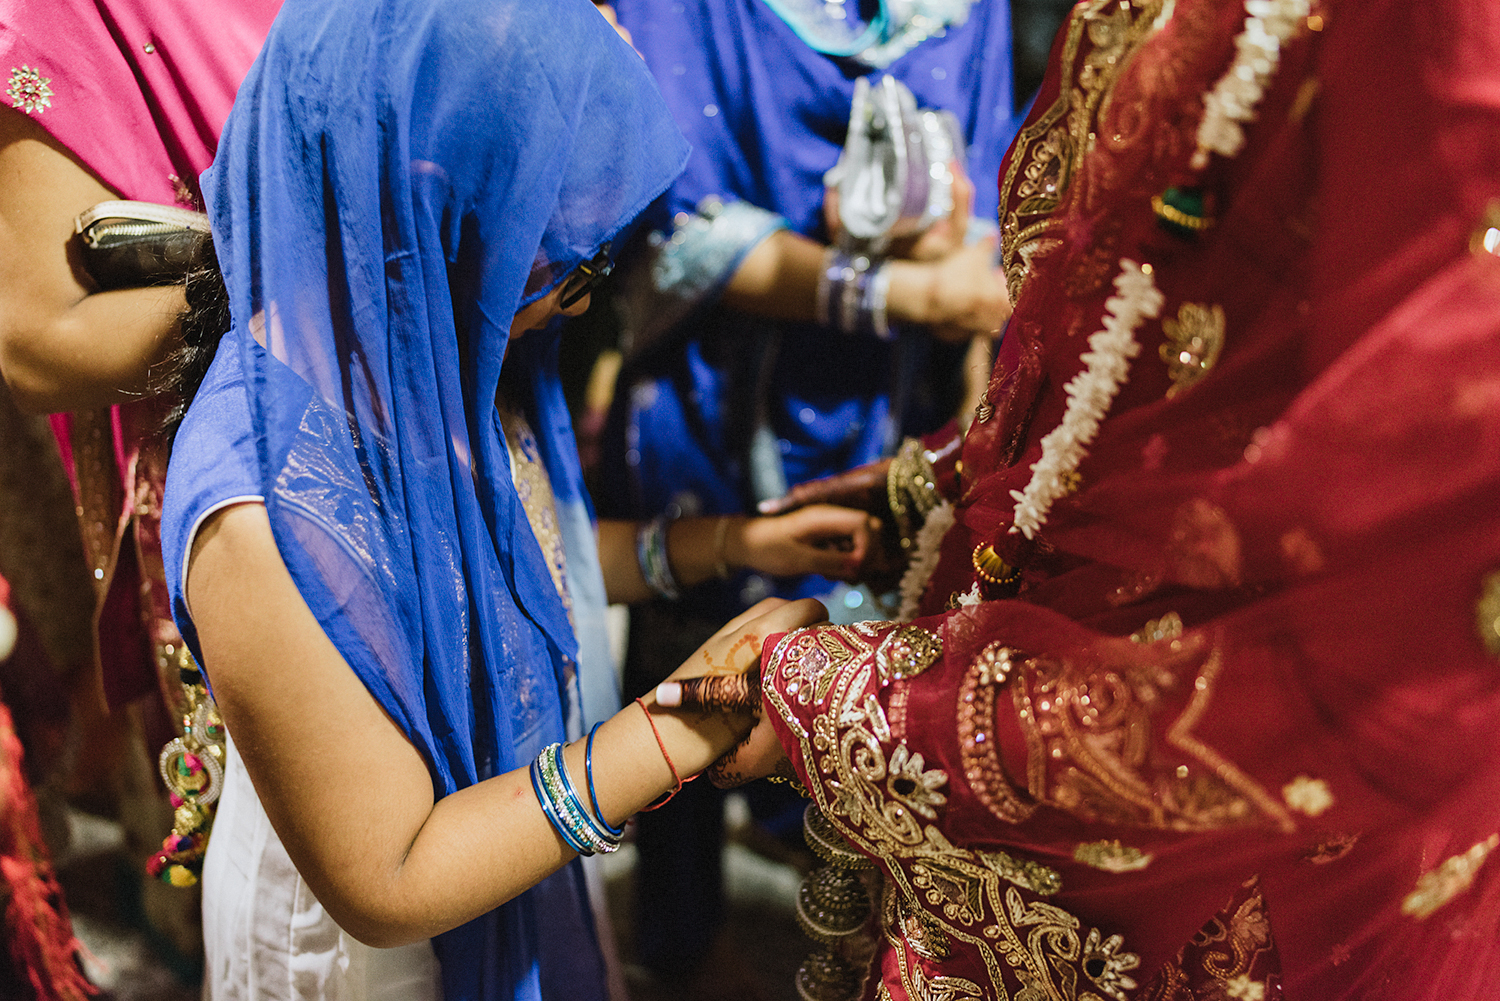 Toronto-Photojournalism-wedding-photographers-3B-Photography-Candid-Documentary-Film-Photography-Analog-Ontario-Hamilton-Port-Perry-Venue-temple-ceremony-sikh-tradition-bride-holding-hands-cute-moment.jpg